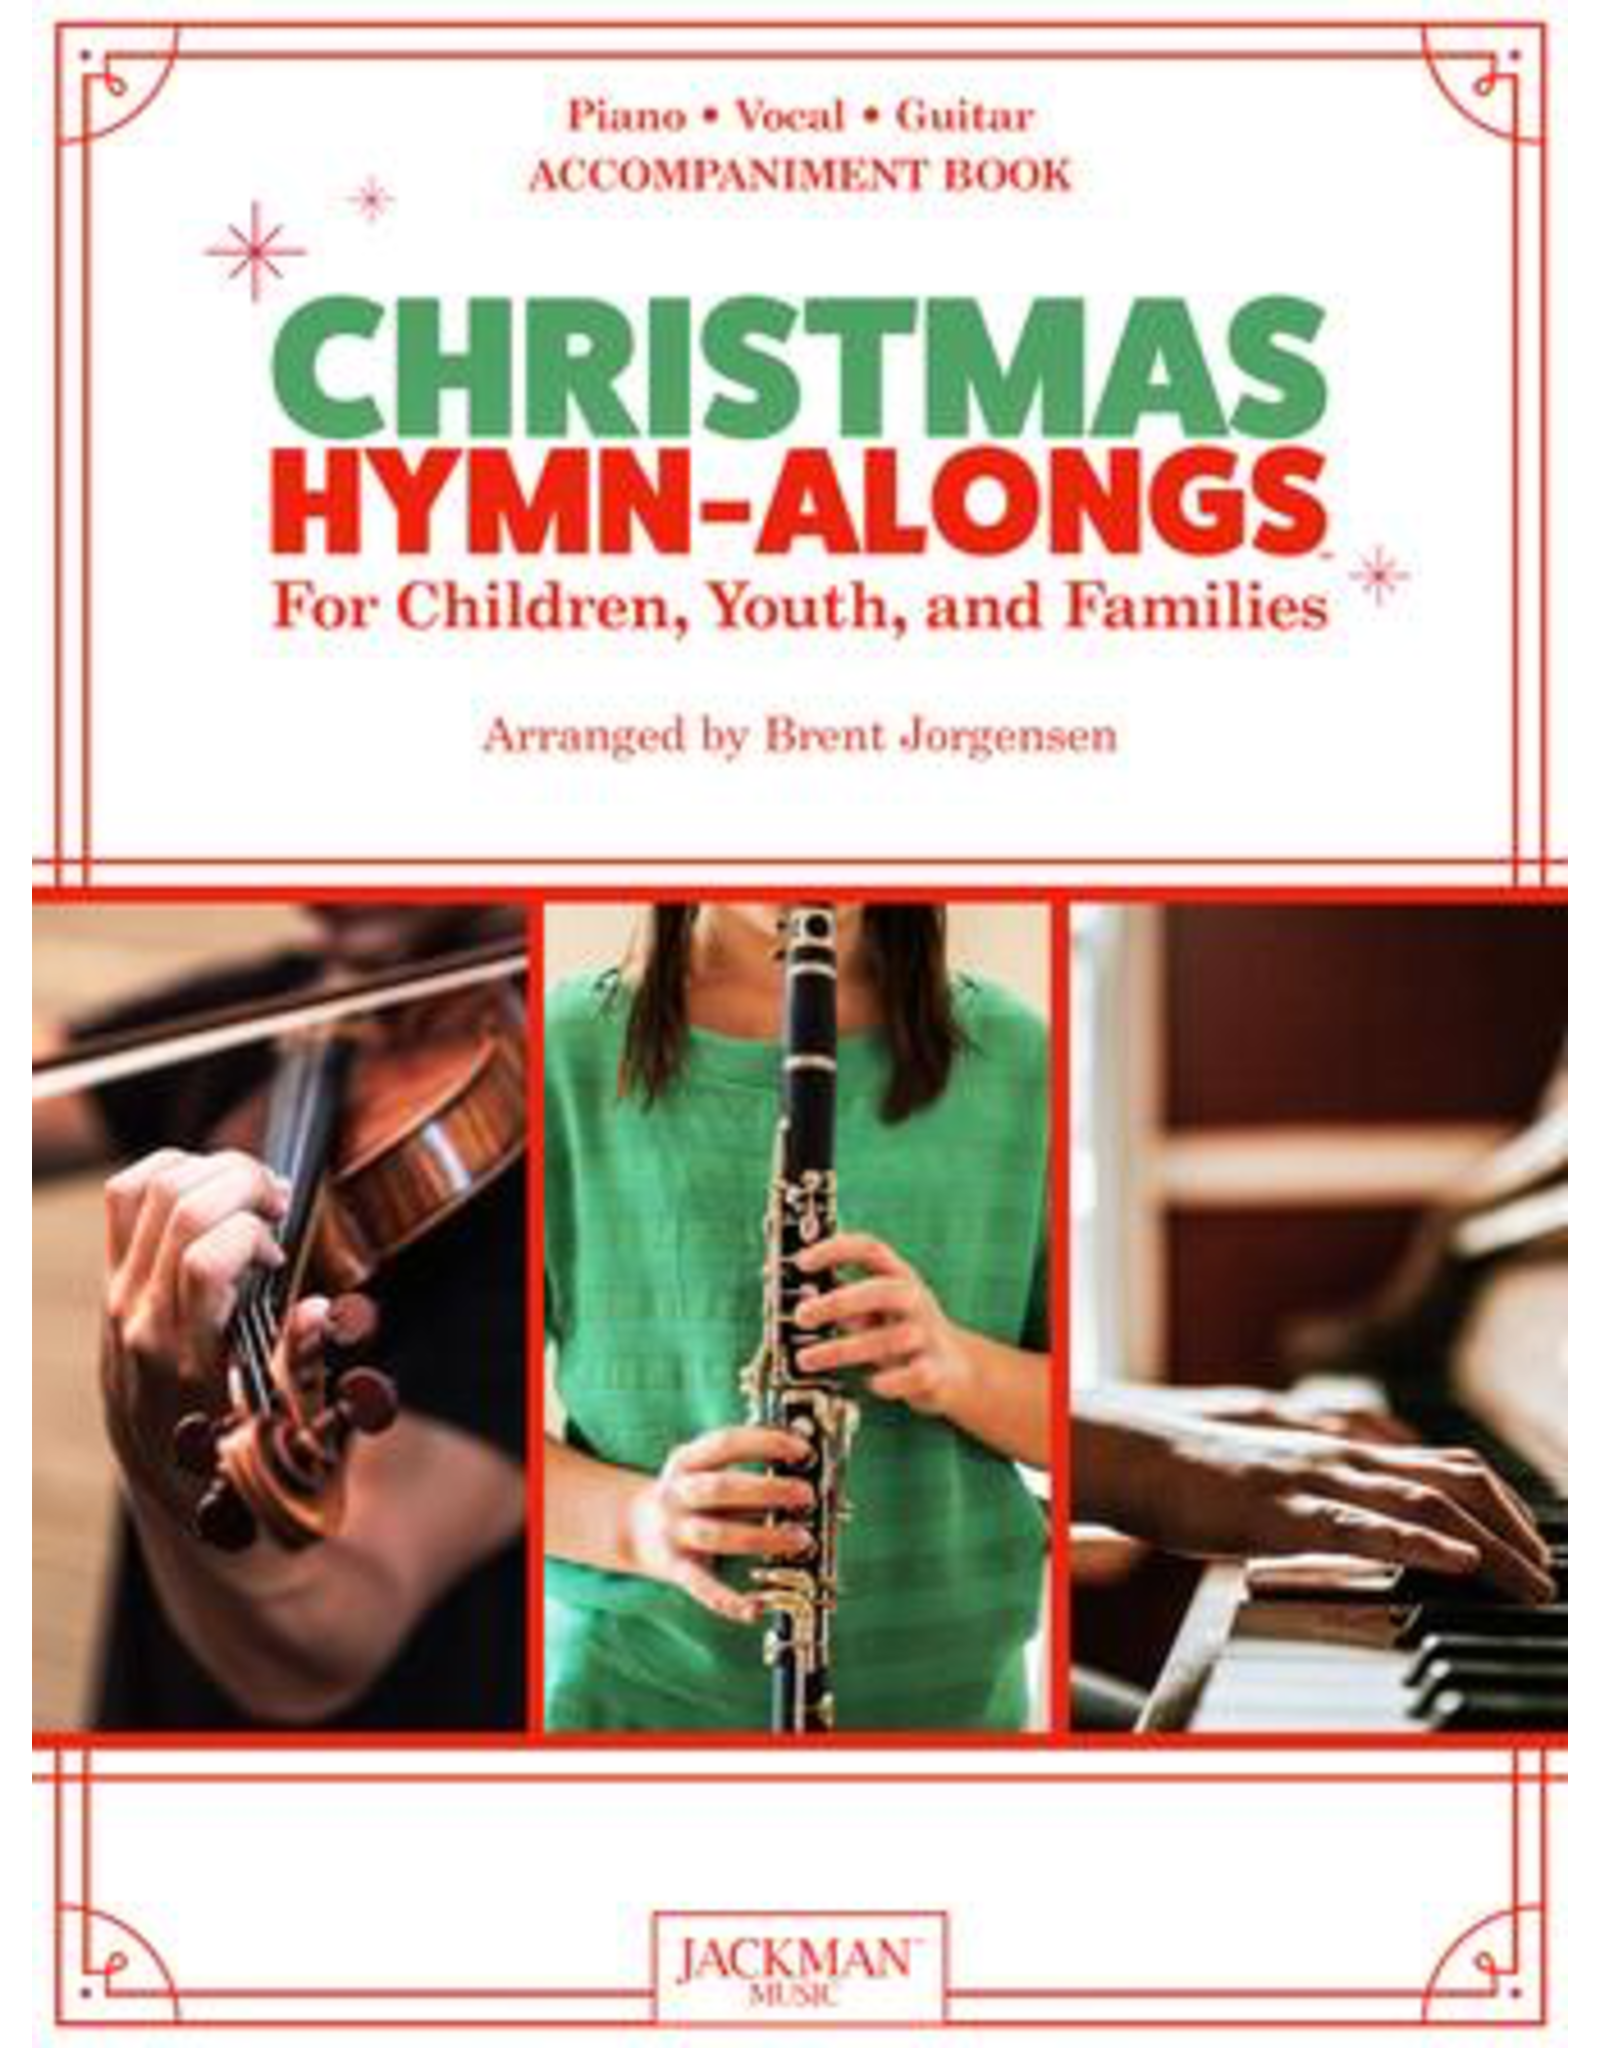 Jackman Music Christmas Hymn-Alongs Vol. 1 - arr. Brent Jorgensen - Piano Accompaniment Book